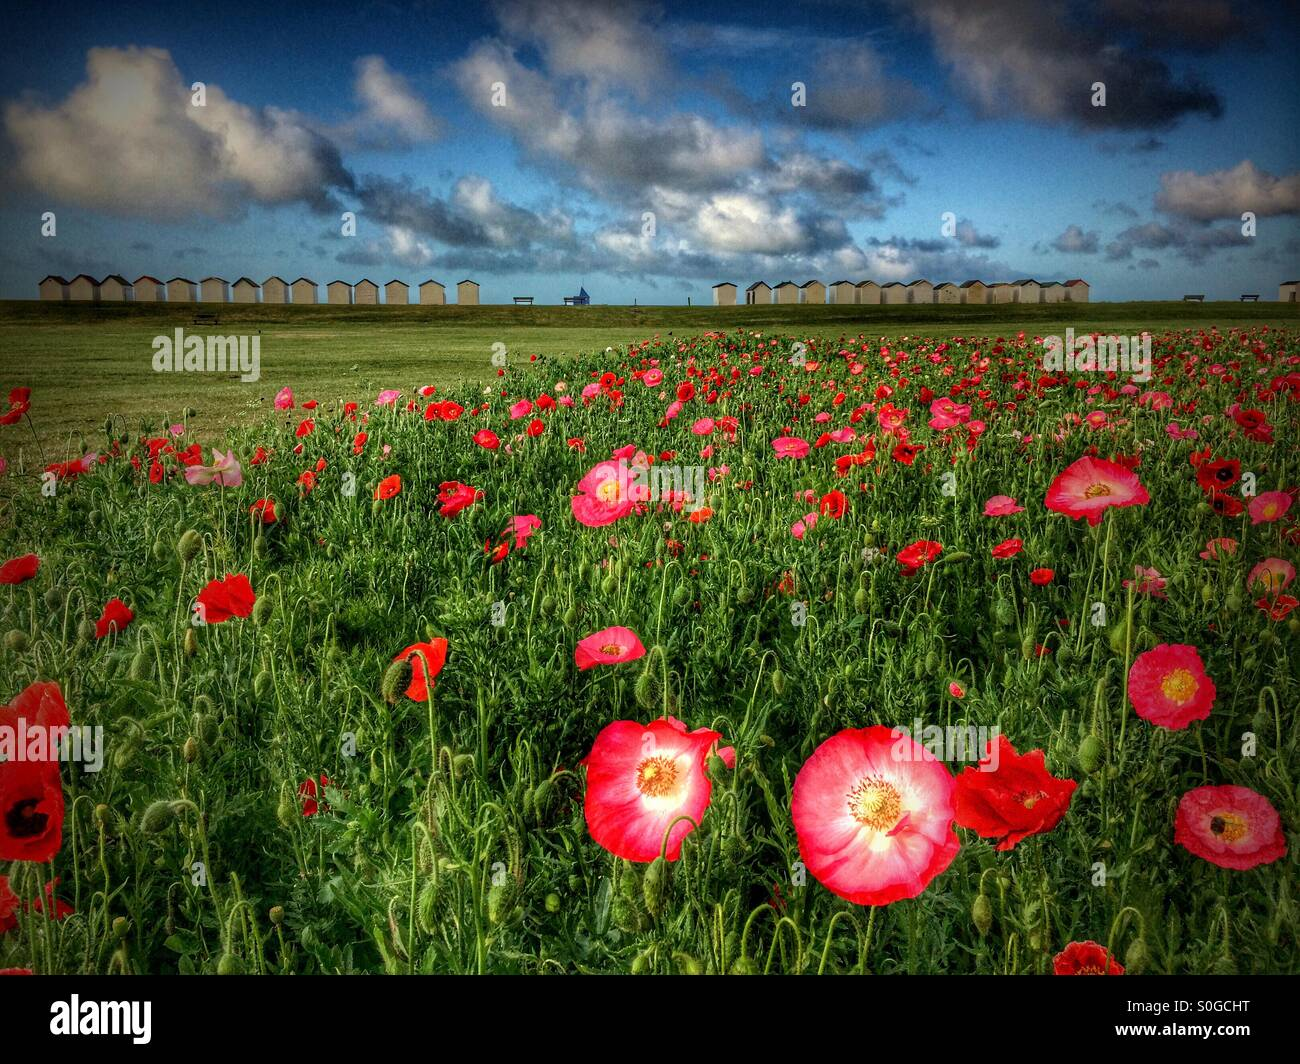 Field of red and pink poppies showing beach huts and seaside in background. - Stock Image